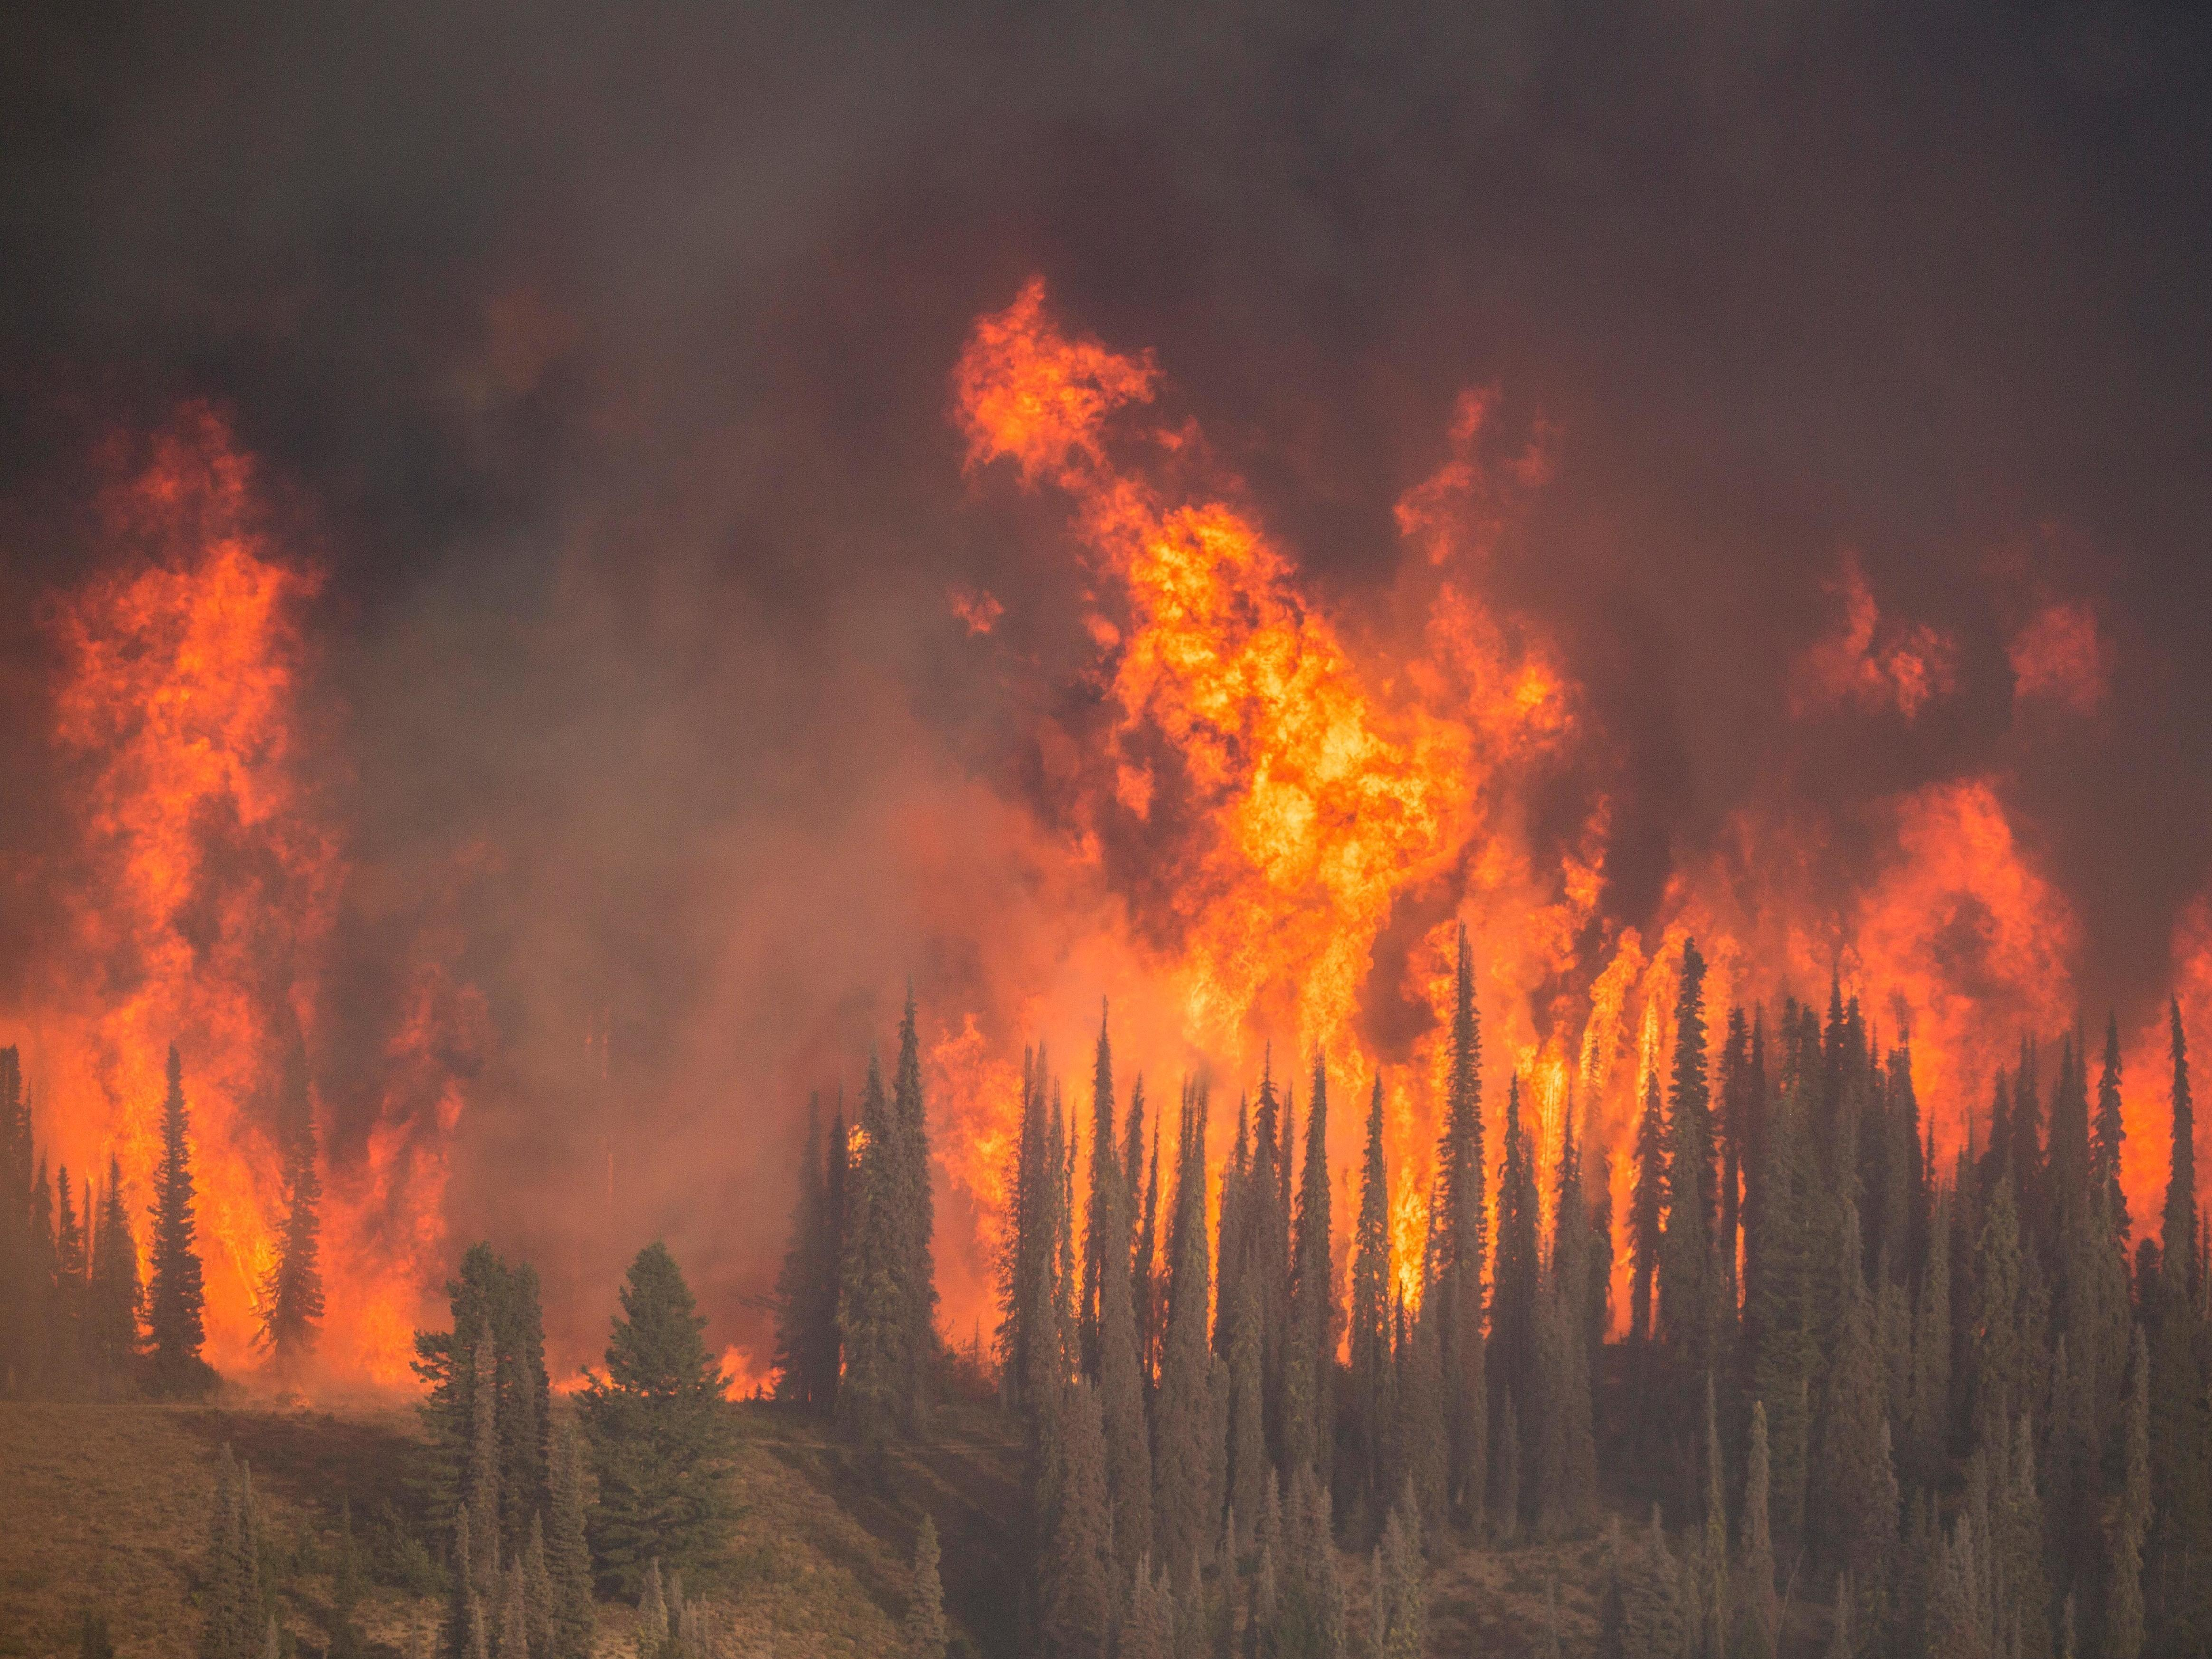 The Pioneer Fire has been burning in Idaho since July, and hot, dry weather caused the fire to grow rapidly this week. (National Forest Service)